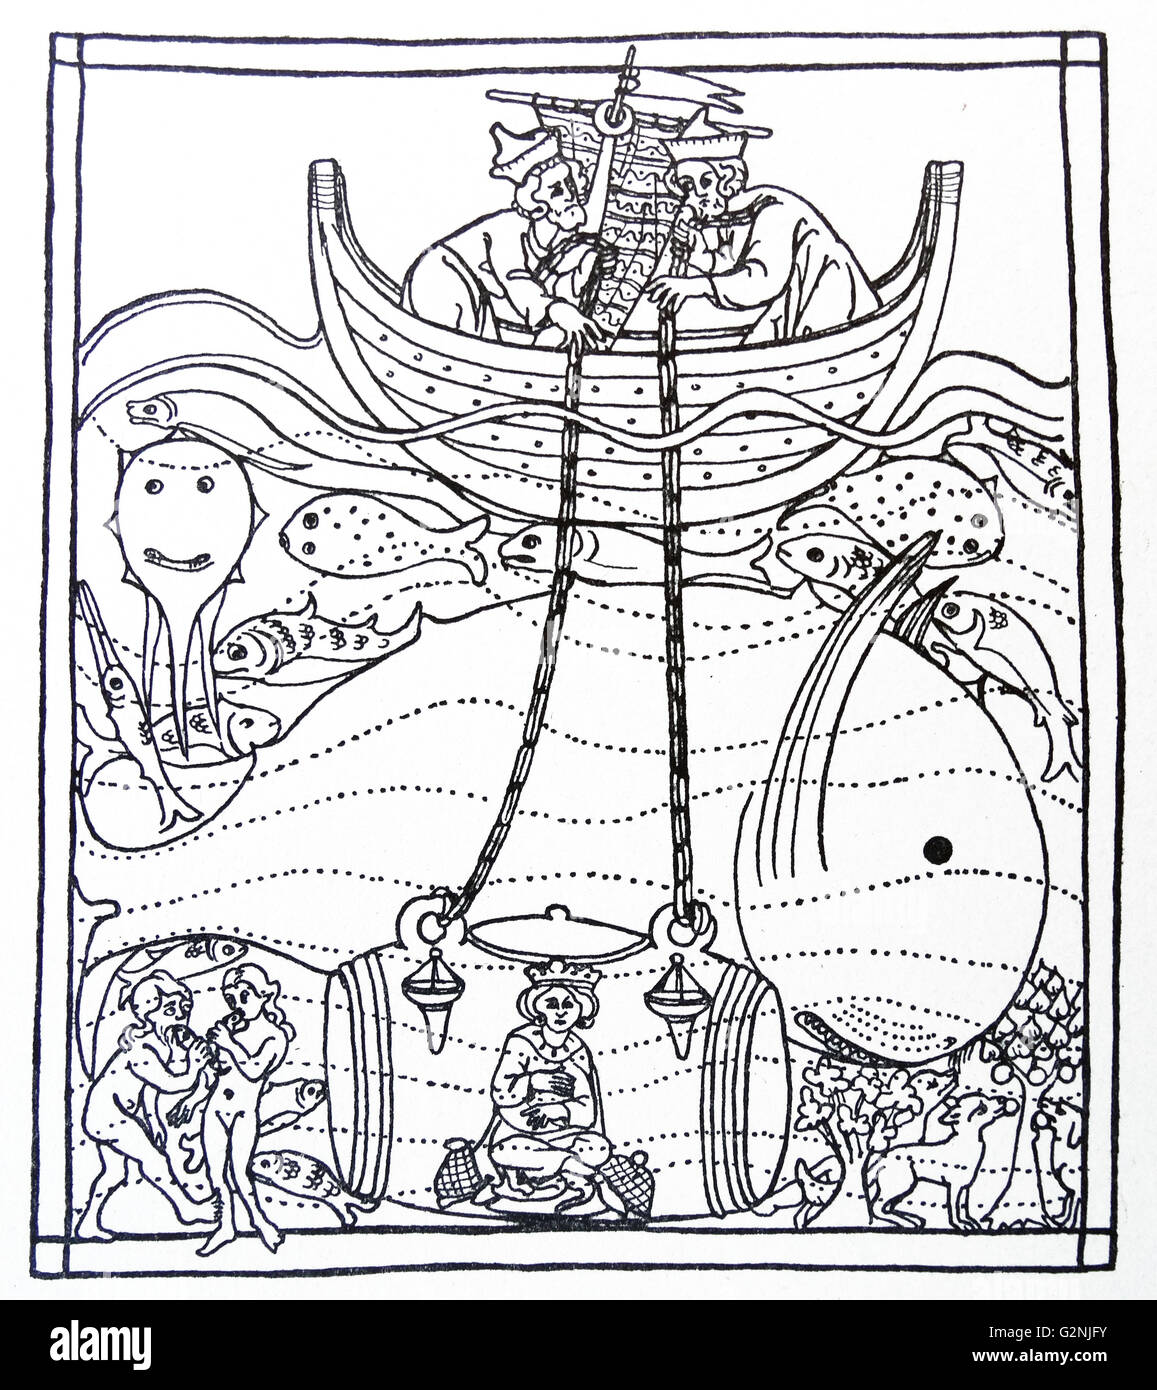 mediaeval line drawing of alexander the great descending to the